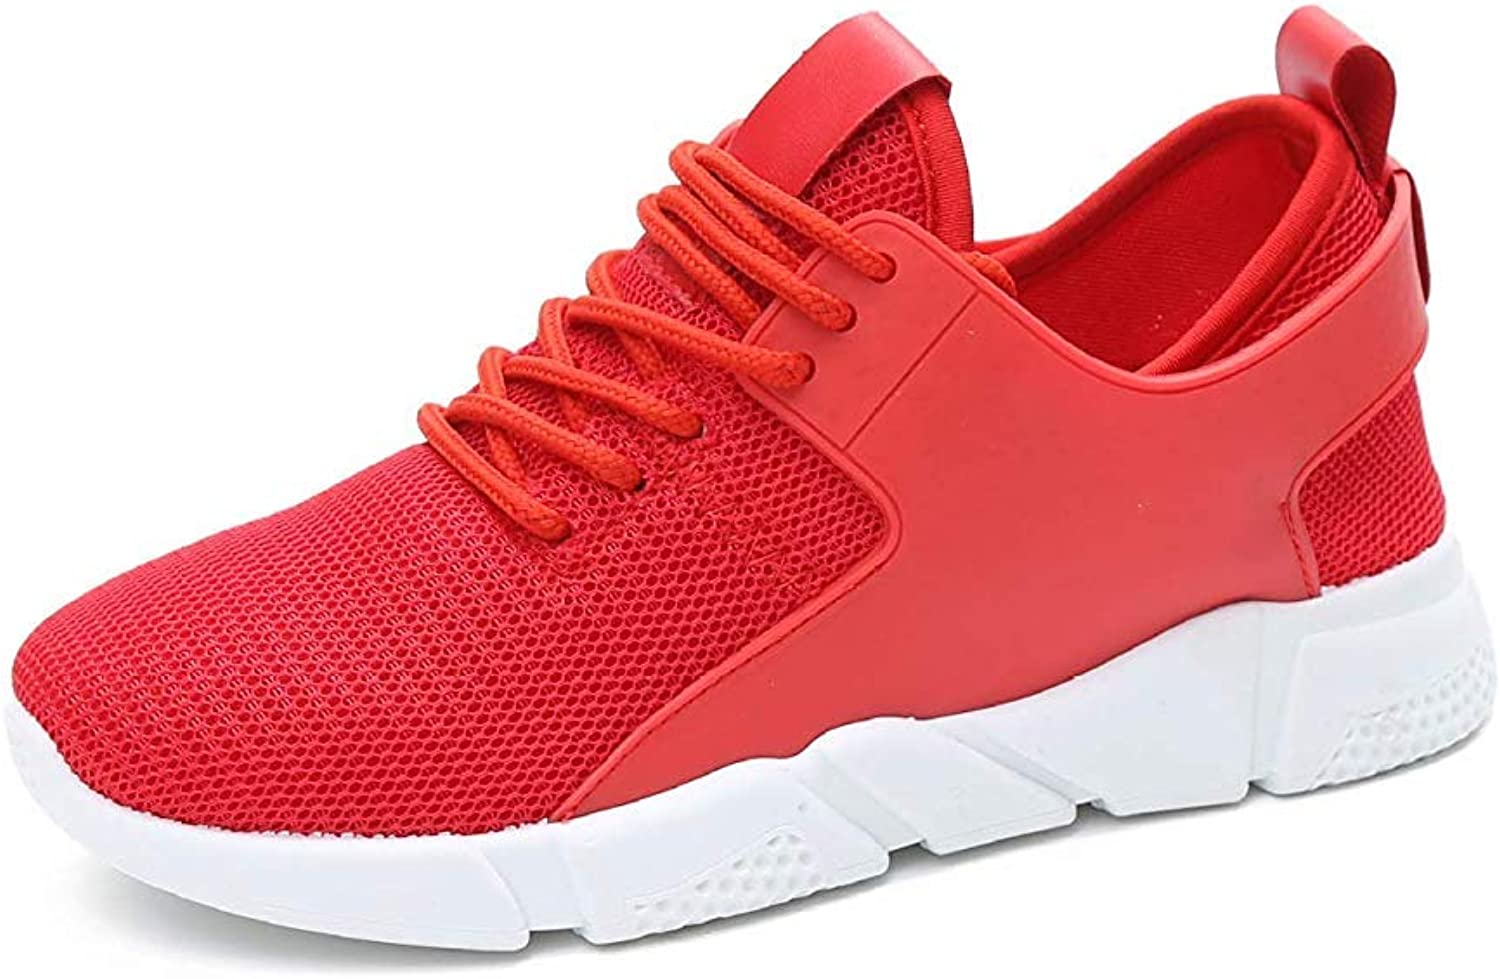 Dianye shoes Sports shoes casual breathable student sports wild